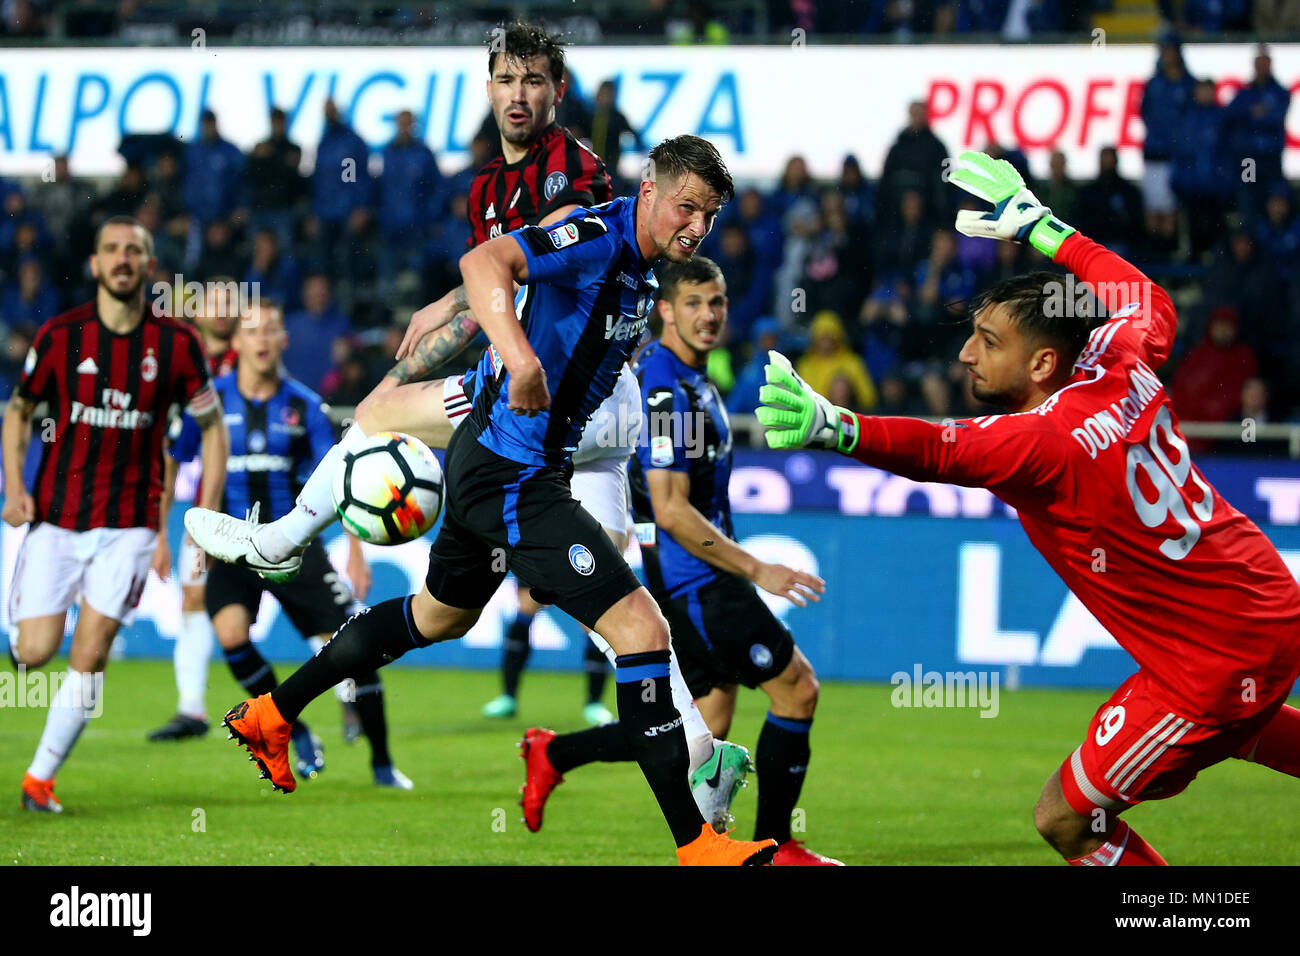 Turin, Italy. 13th May, 2018. football, Serie A championship 2017-2018 13-5-2018 Atalanta vs. Milan 1-1 in the picture: Credit: Independent Photo Agency/Alamy Live News Stock Photo